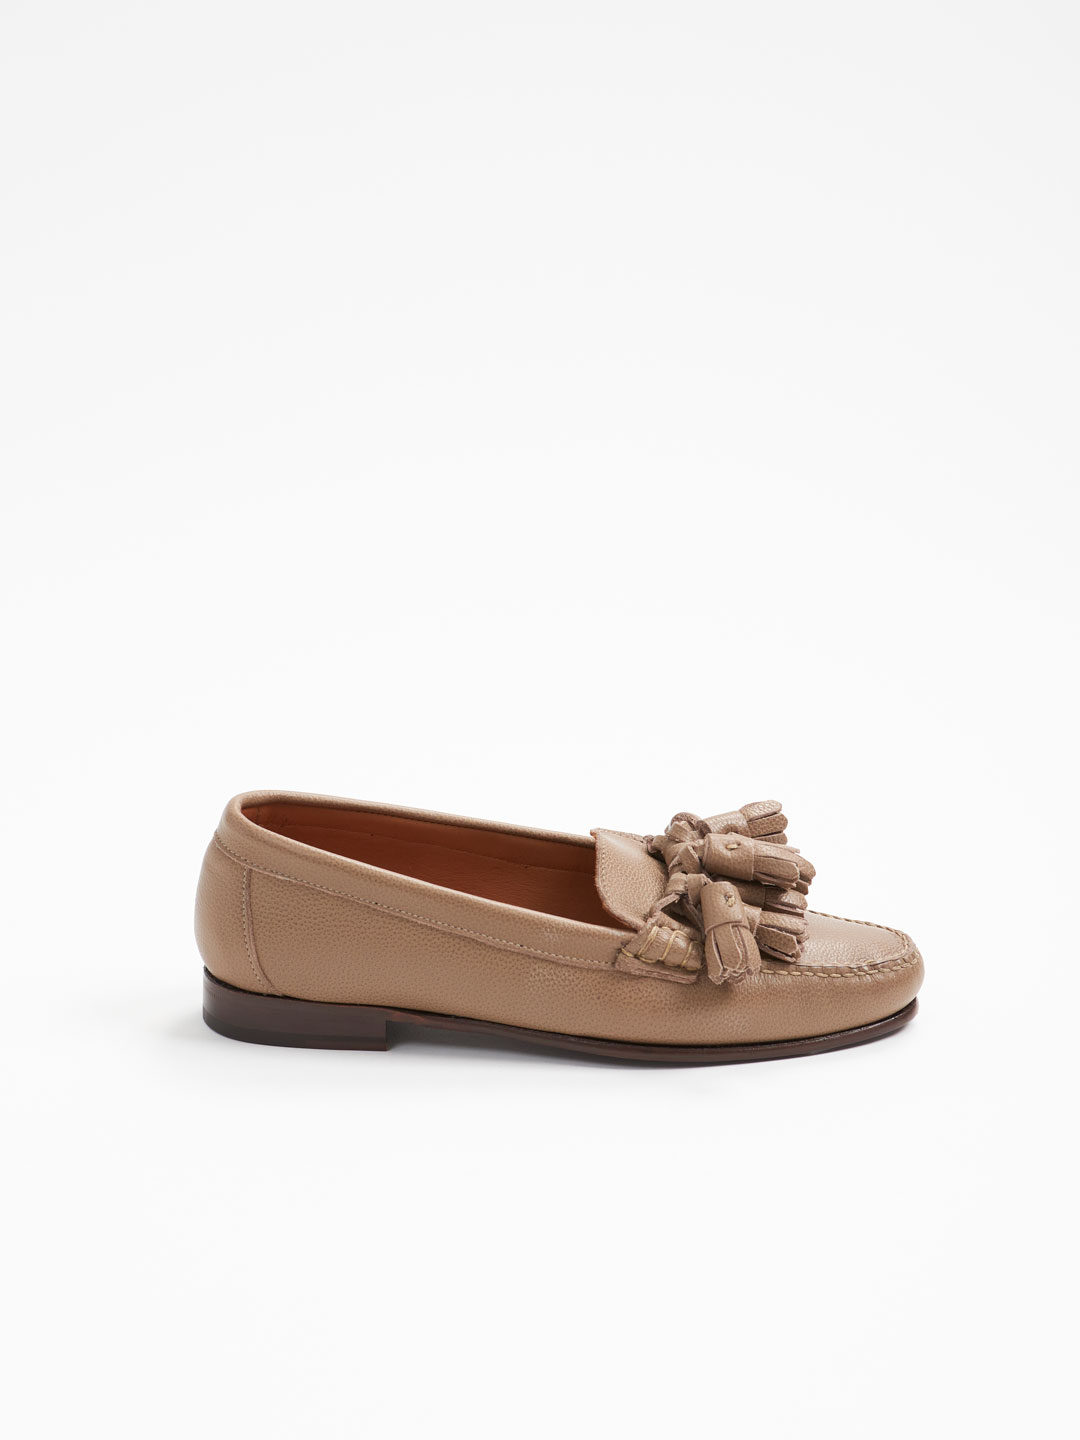 CRESTA Tasselled Loafers - Taupe